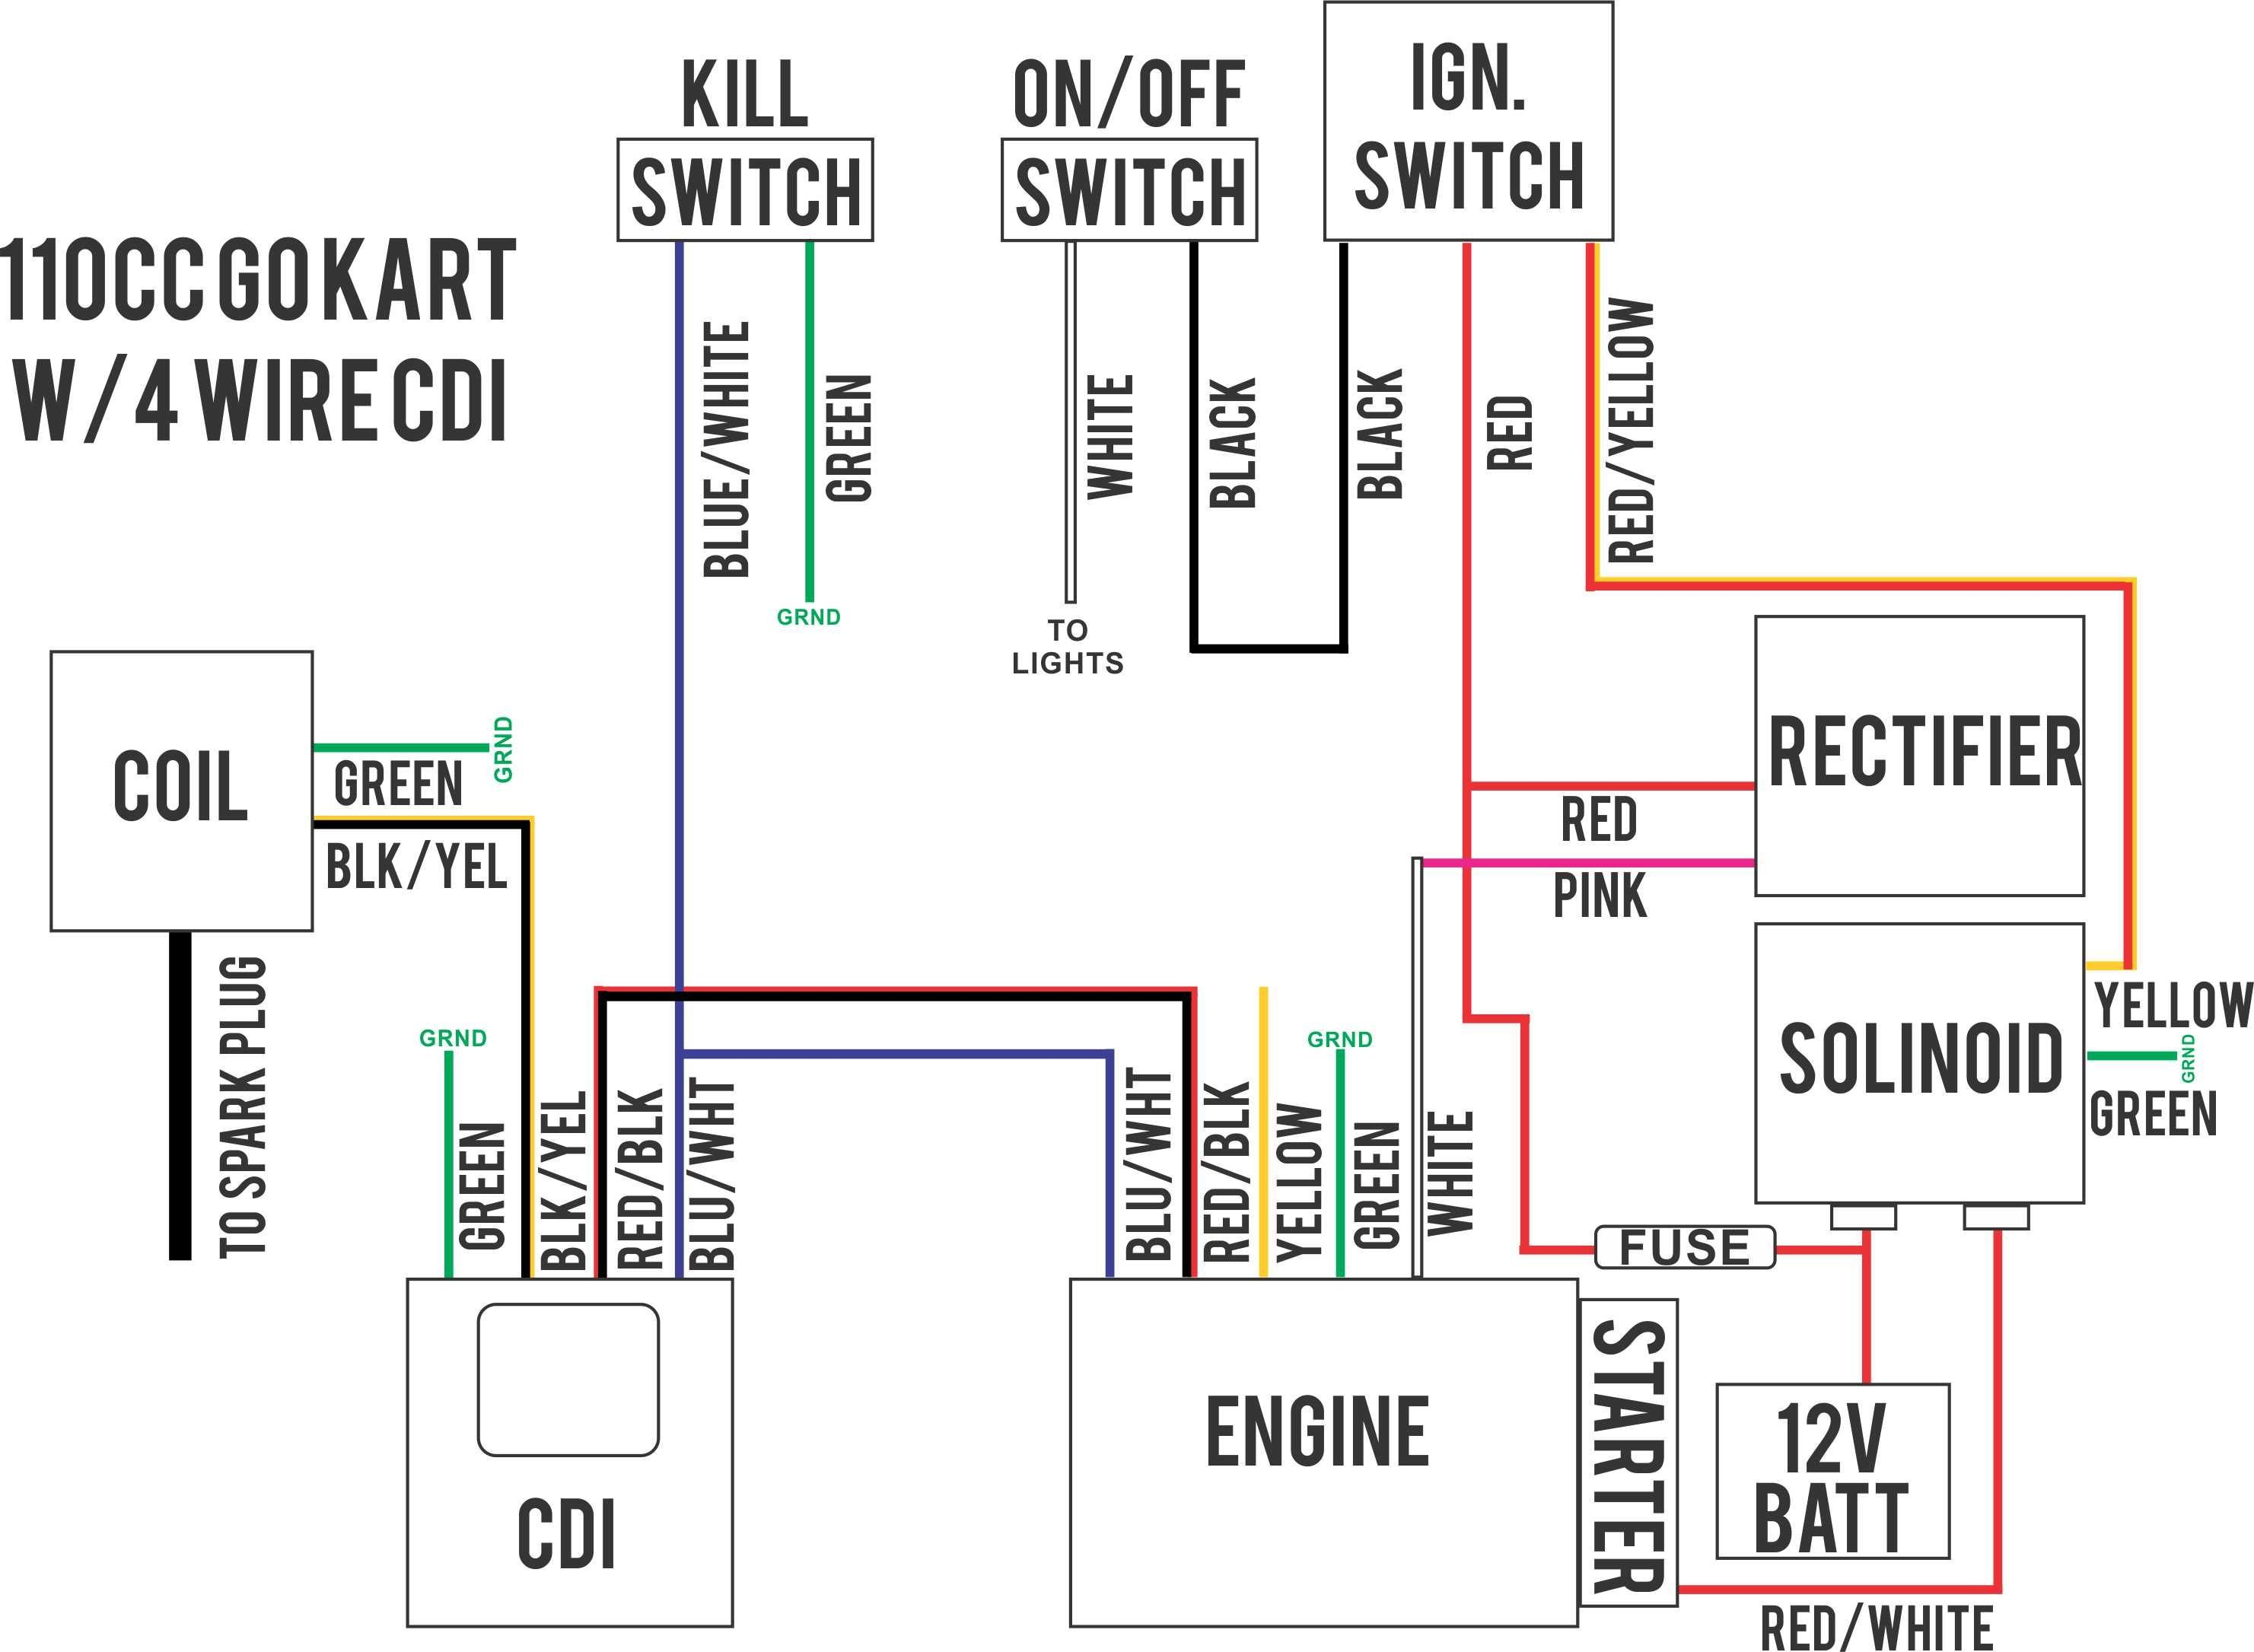 Chinese atv Wiring Schematic 110cc Vh 1334] 110cc atv Wiring Diagram to Her with Loncin 110cc Of Chinese atv Wiring Schematic 110cc